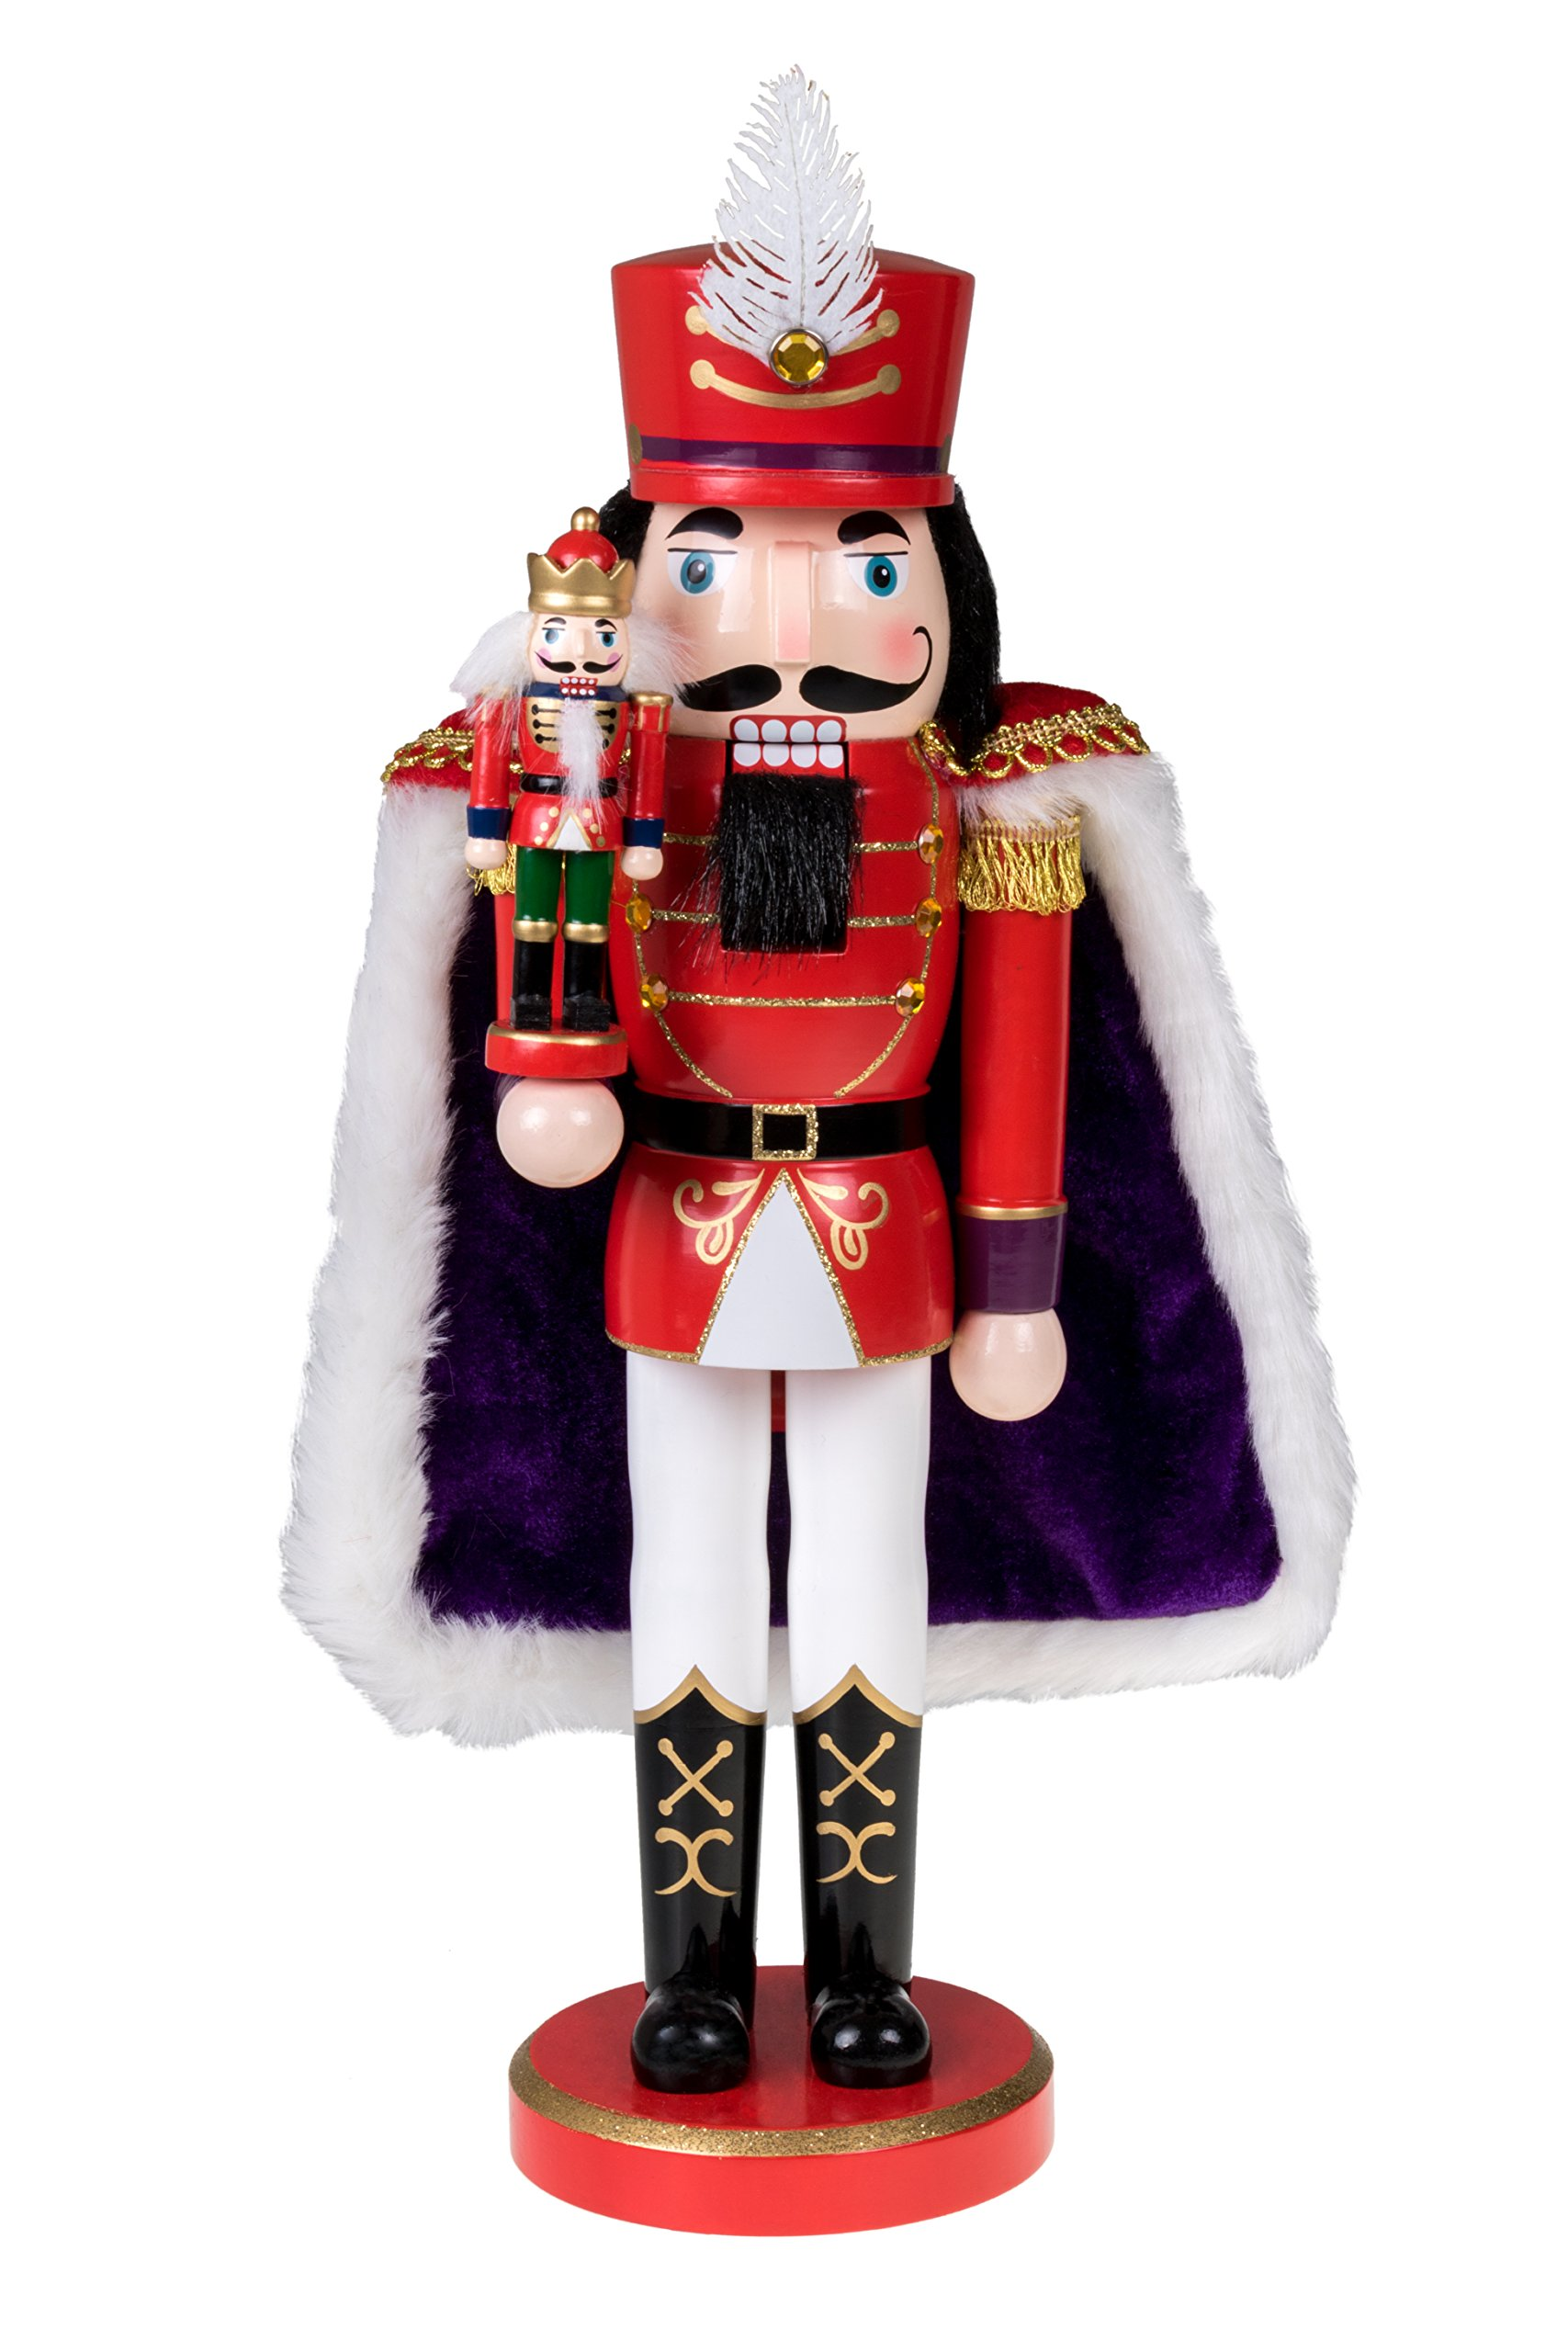 Clever Creations Red Prince Wooden Nutcracker Wearing Purple Cape Holding Toy Nutcracker Gift | Festive Decor | Perfect for Shelves and Tables | 100% Wood | 14'' Tall